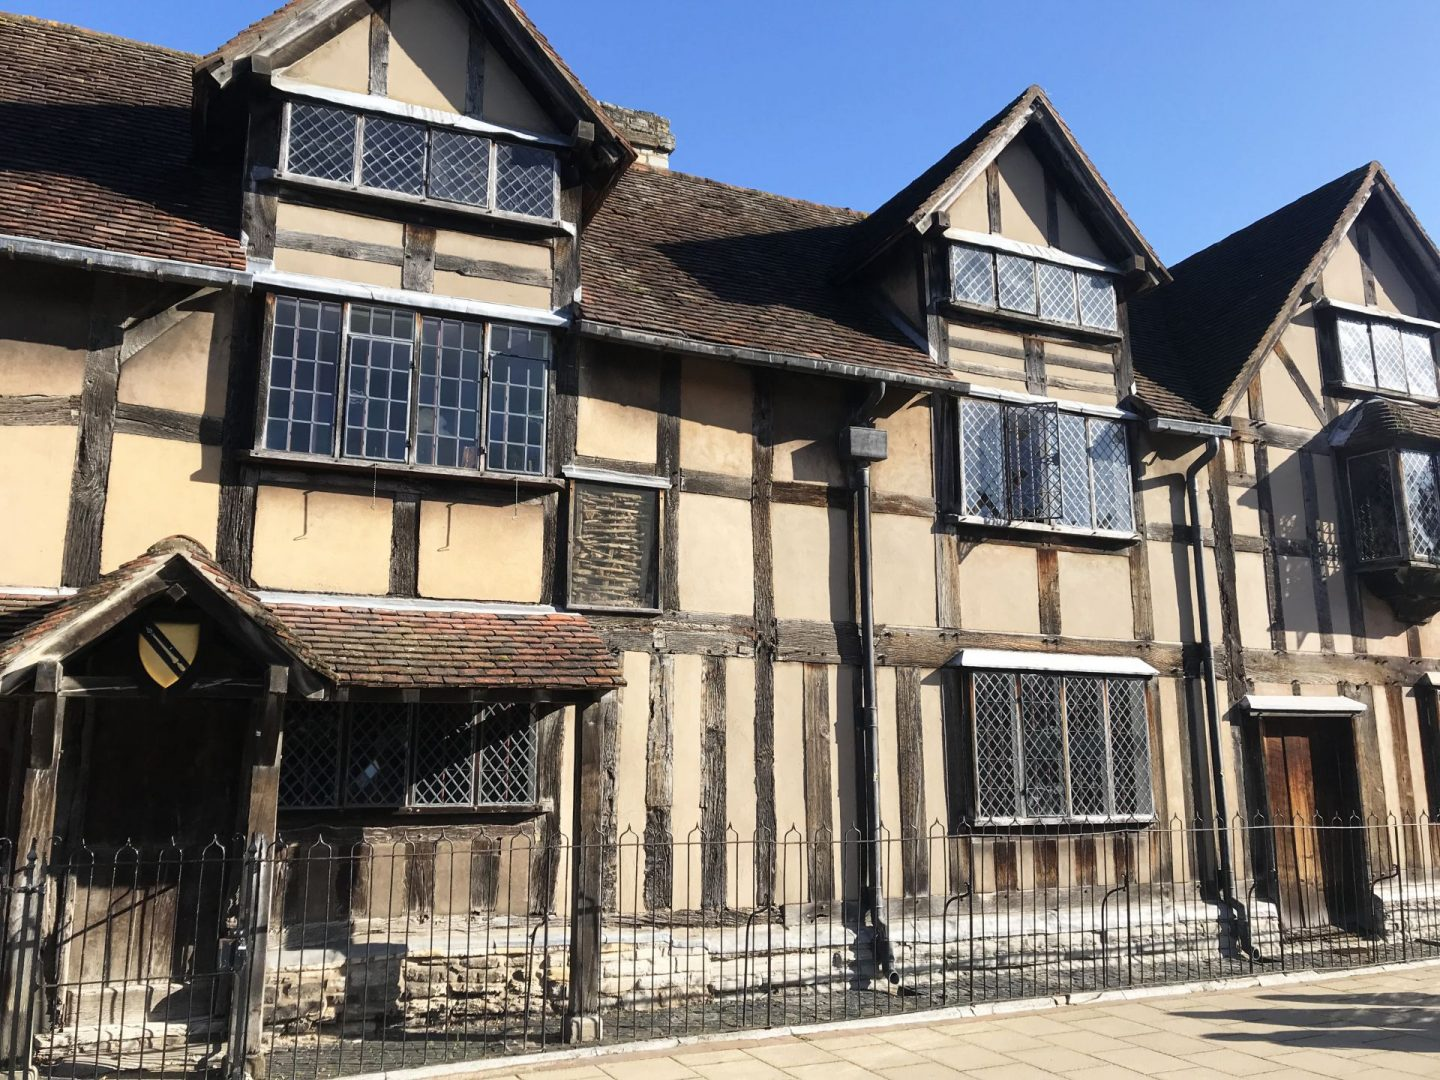 William Shakespeare House Stratford Upon Avon